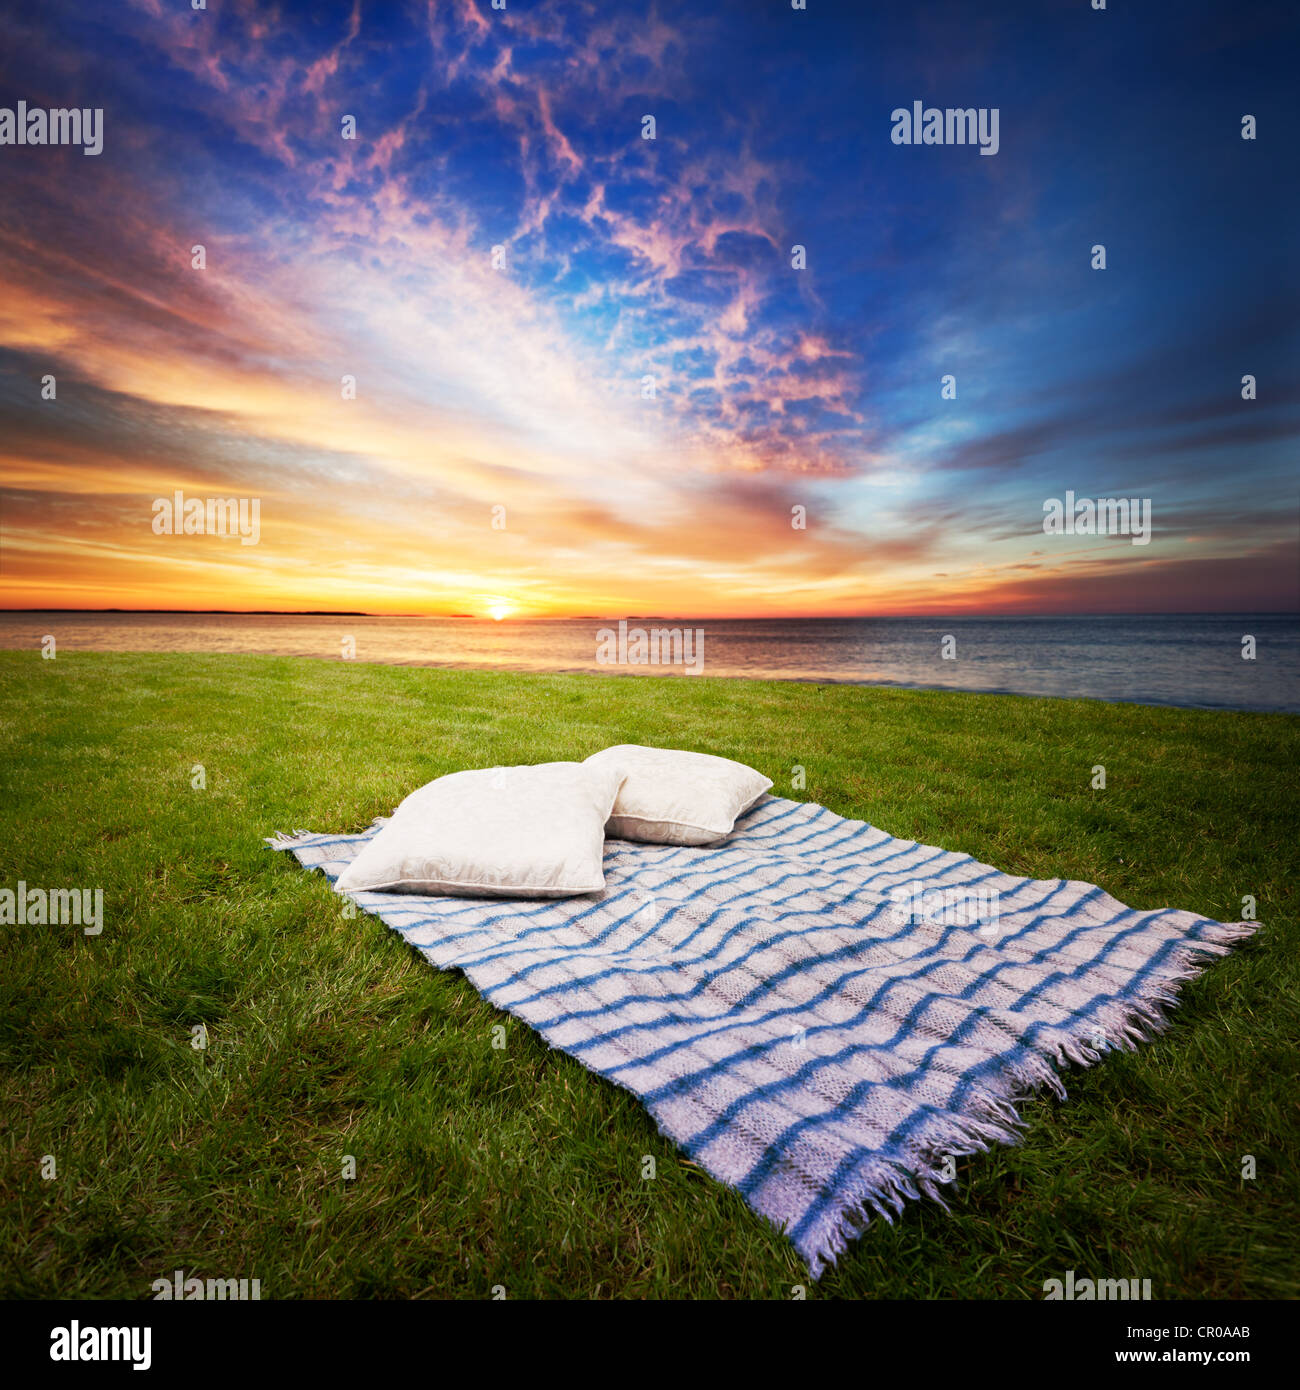 Blanket and pillows for two in a peaceful spot - Stock Image